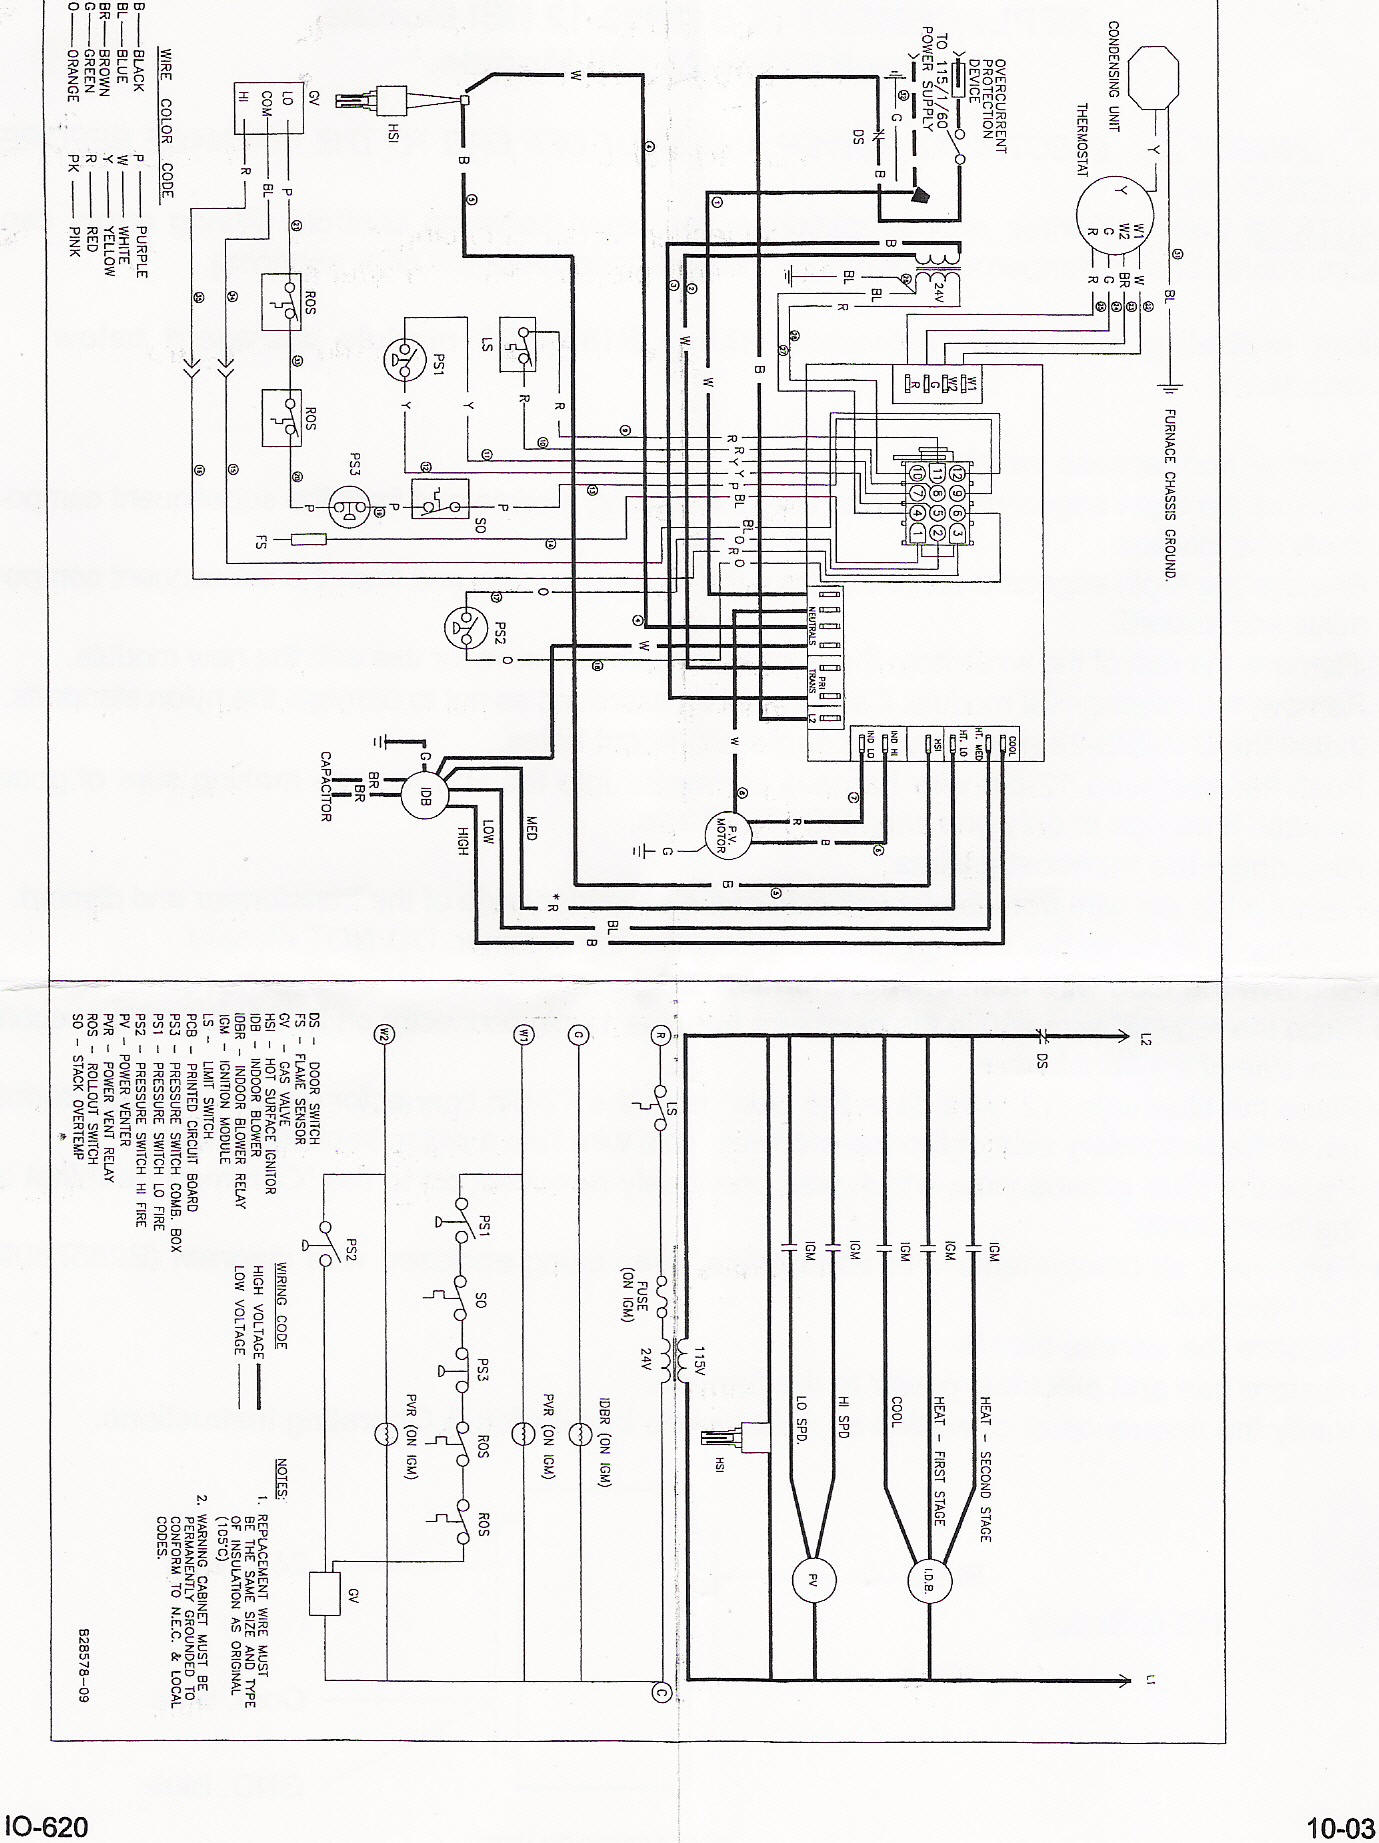 goodma2 instr york control board wiring diagram electric motor control circuit york chiller control wiring diagram at webbmarketing.co